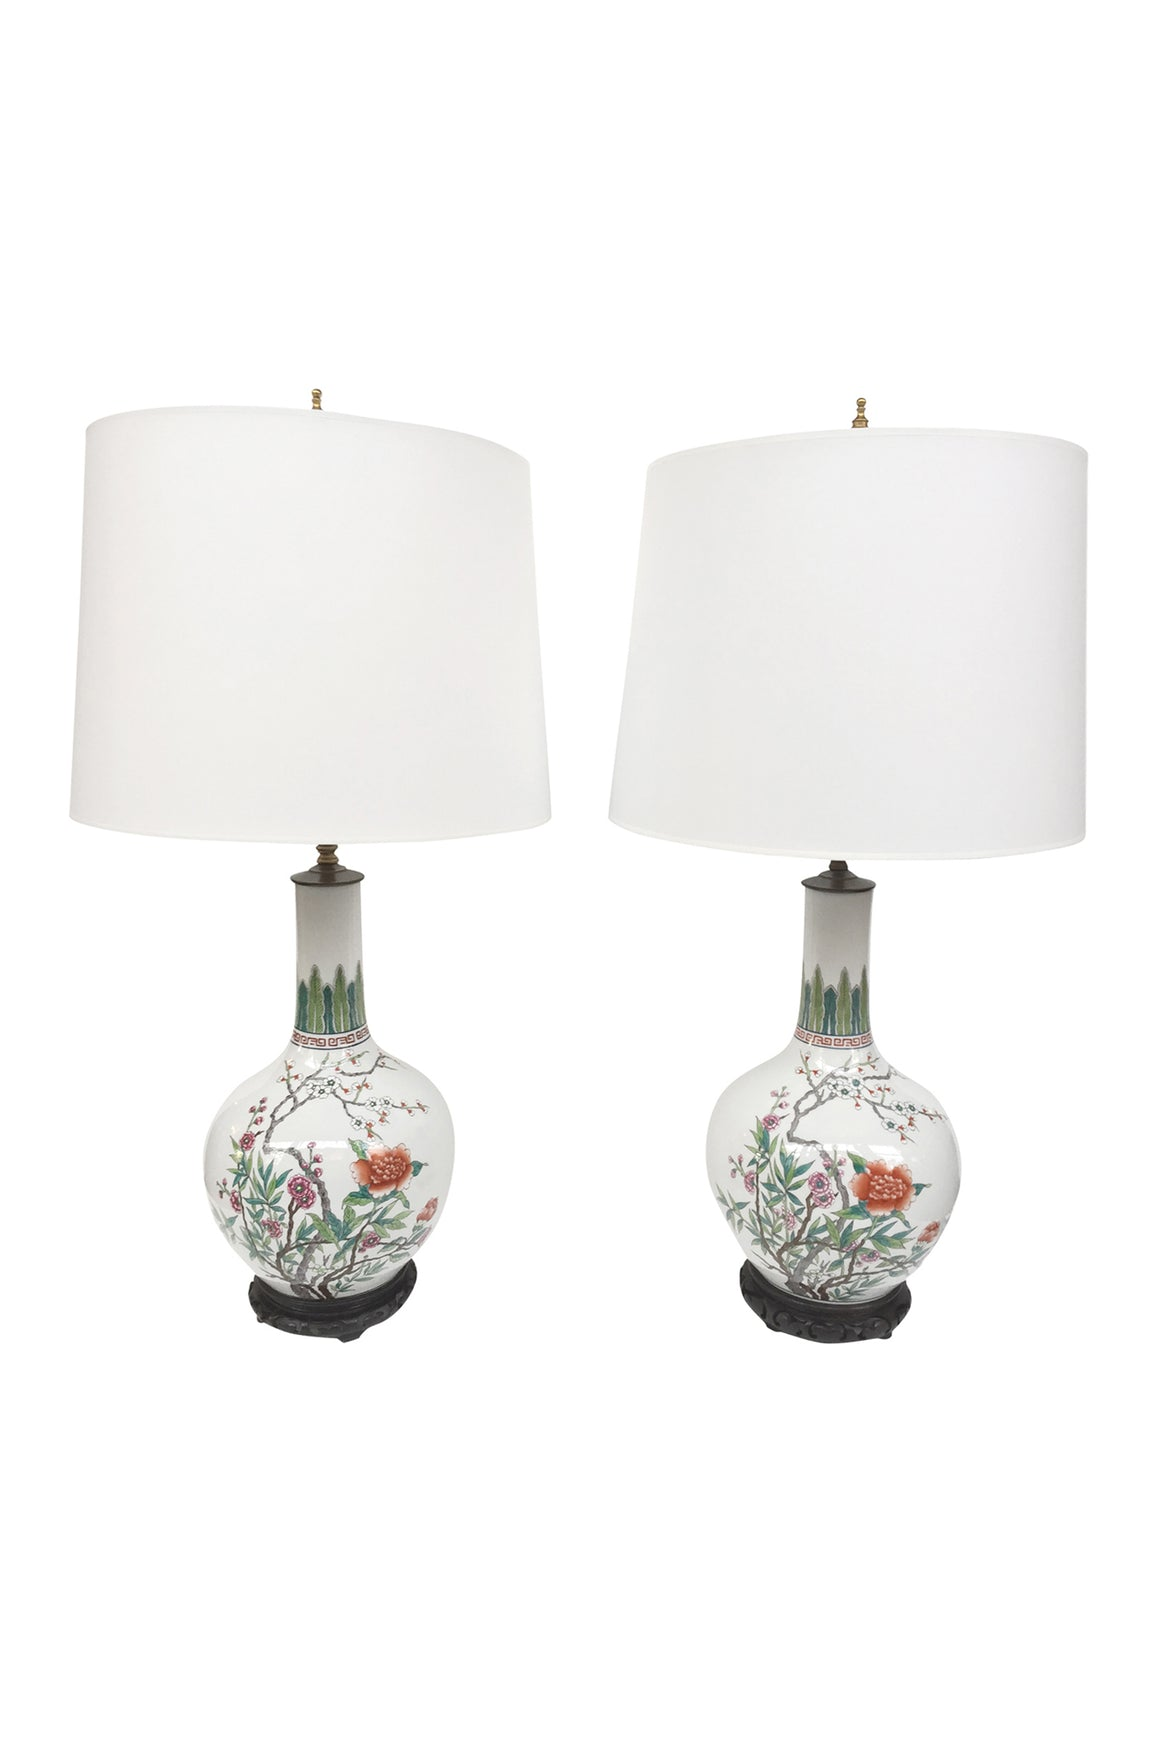 Pair of Mid-20th Century Chinese Porcelain Table Lamps